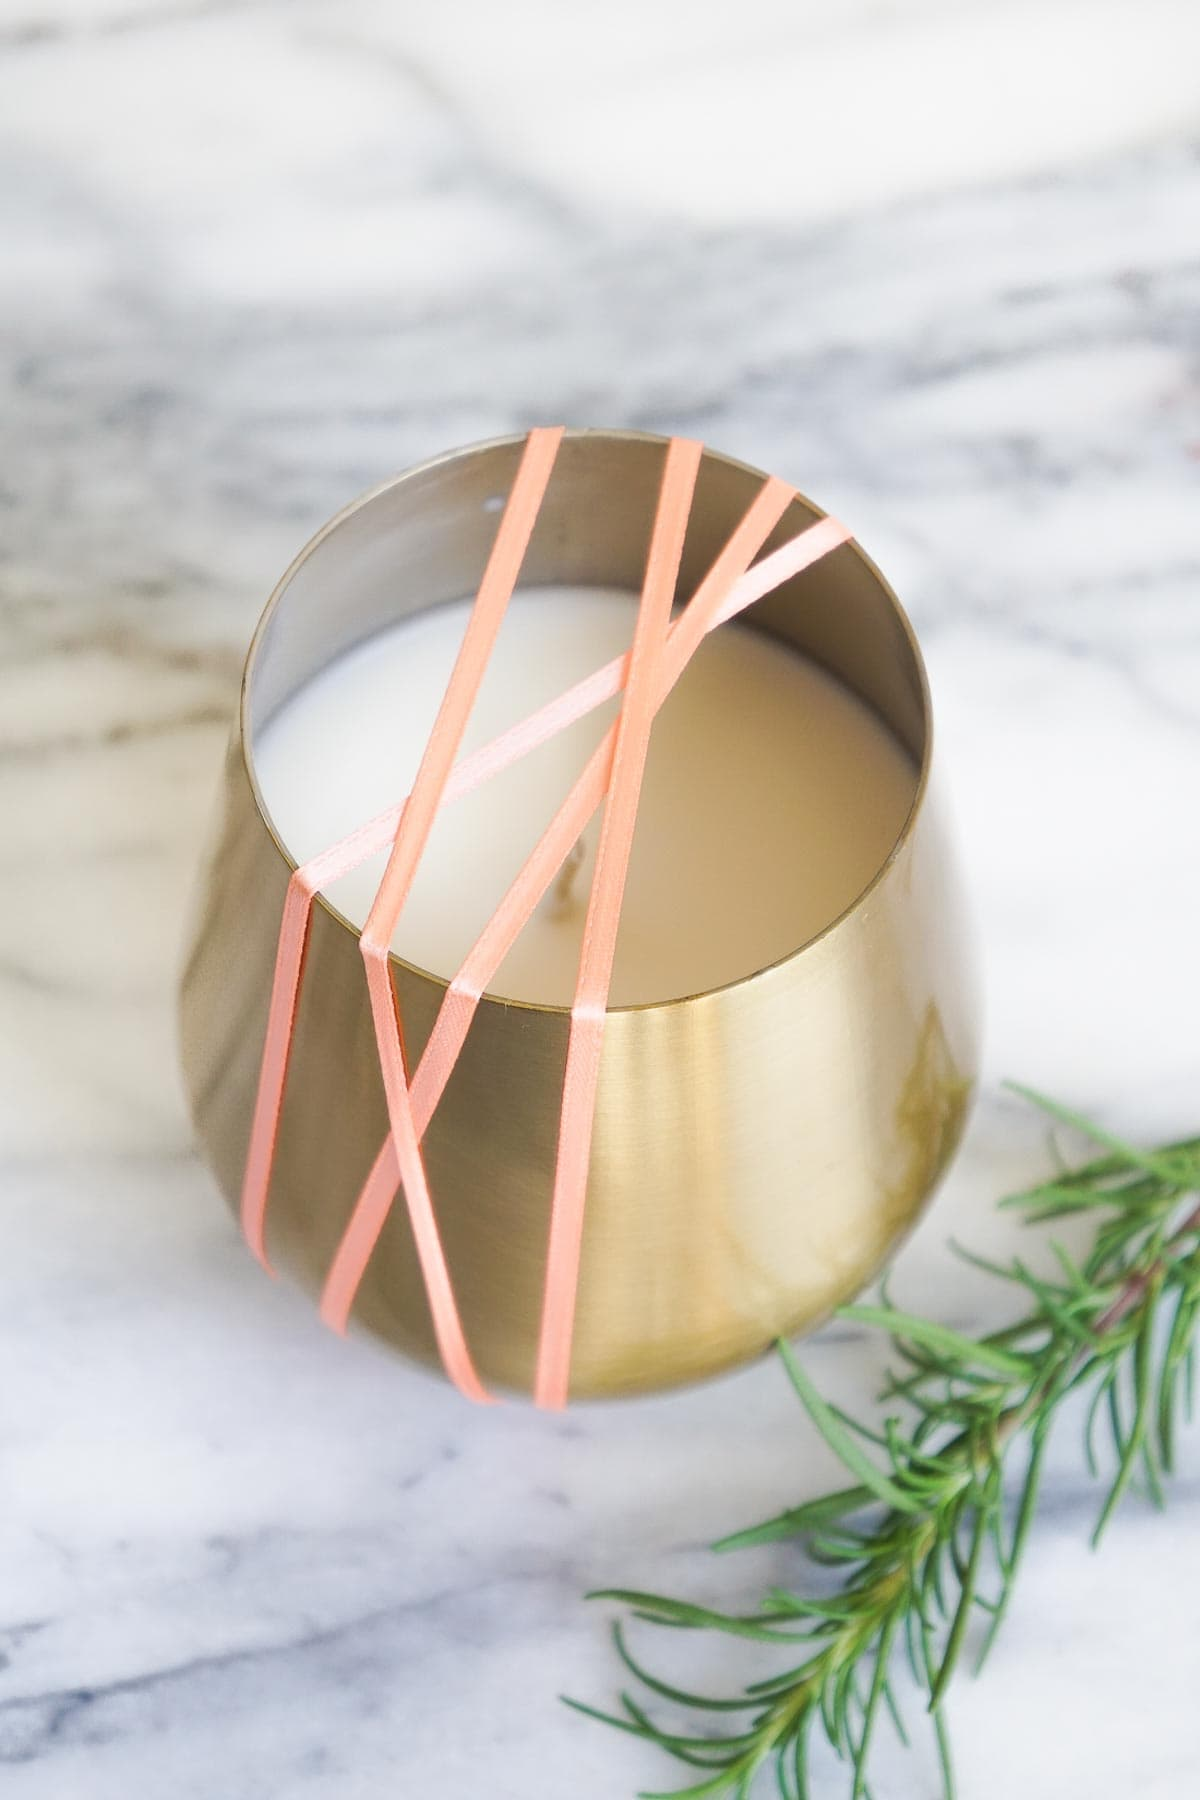 DIY Rosemary and Grapefruit Candle how to by Sugar & Cloth, an award winning DIY blog.